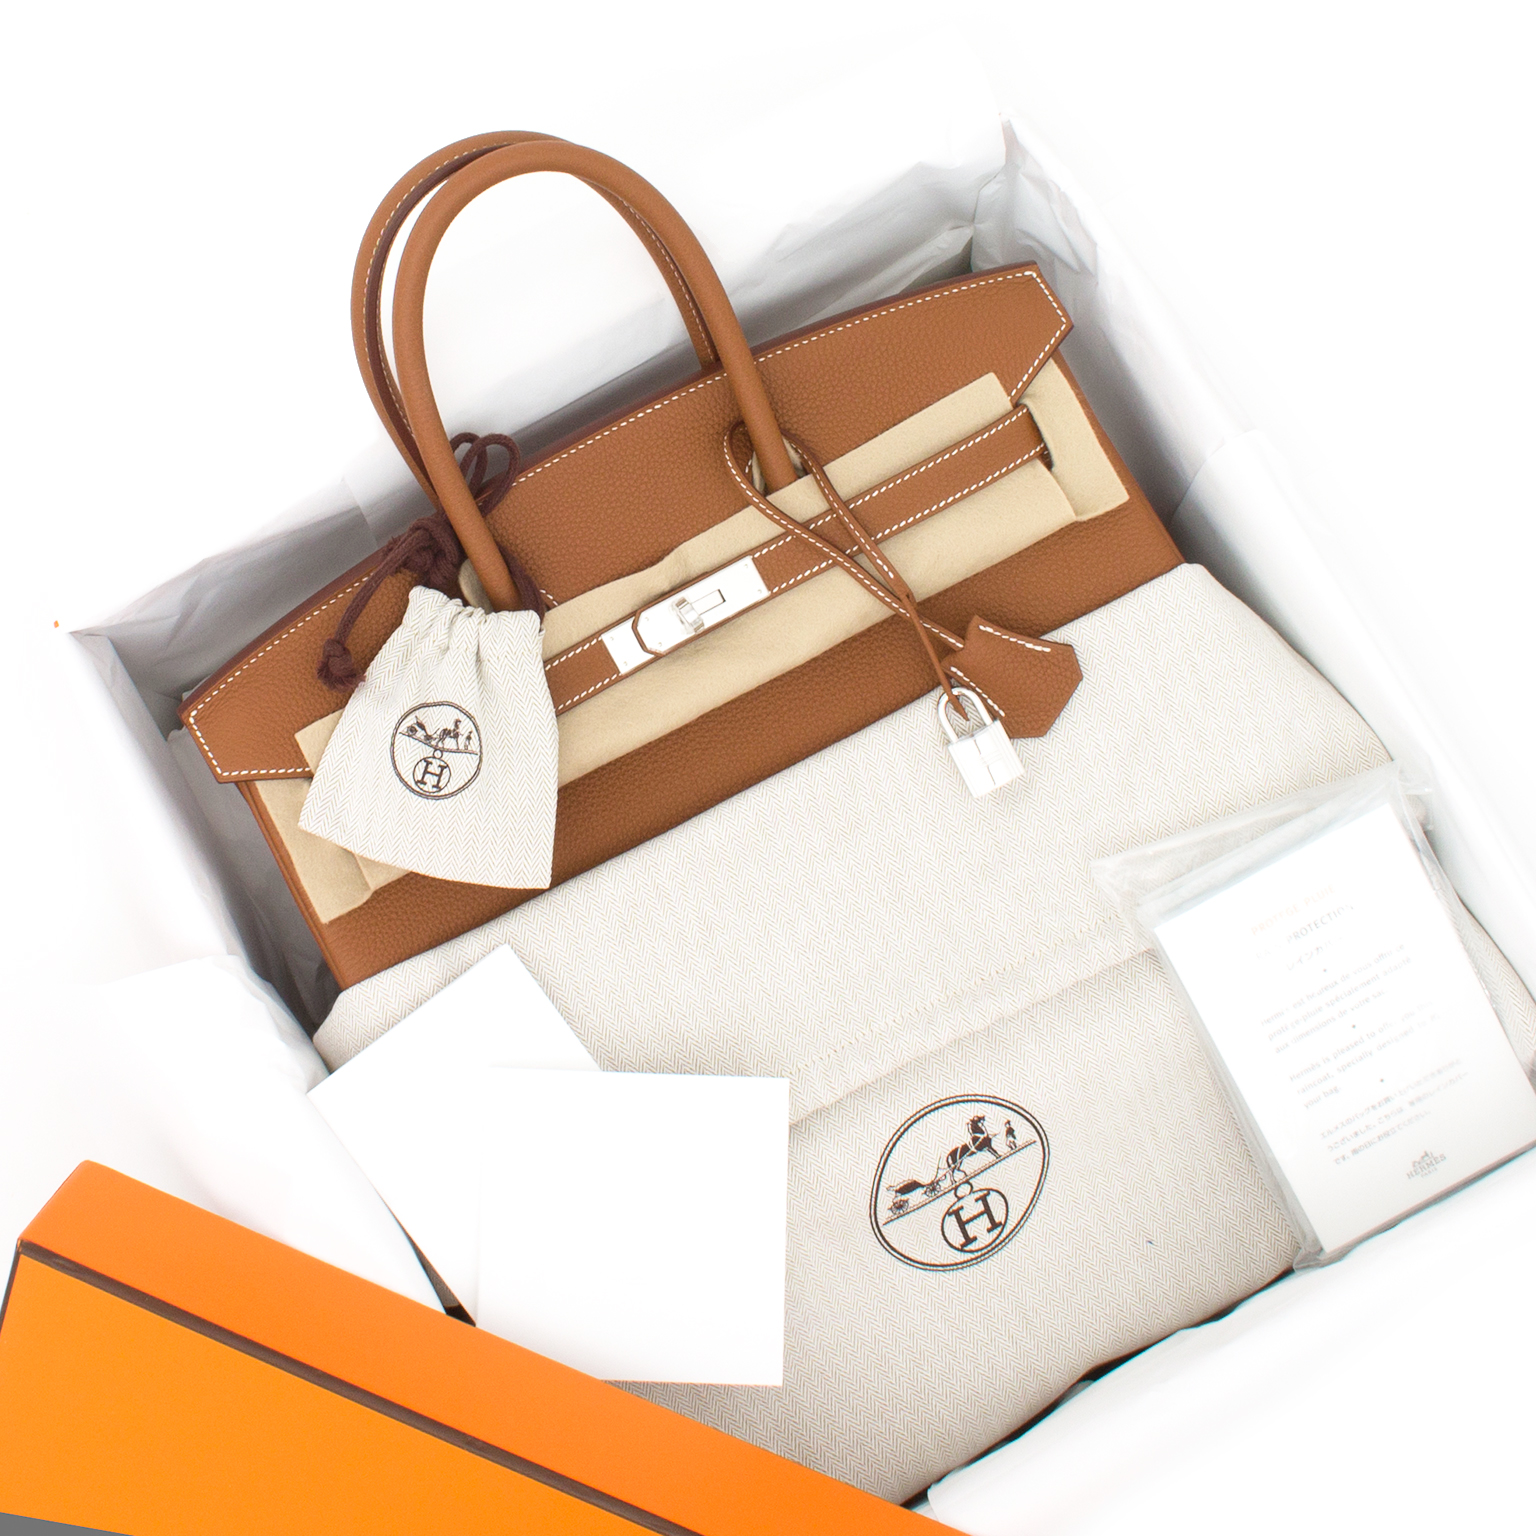 BRAND NEW Hermès Birkin Bag 35 PHW Togo Gold worldwide shipping , receipt and box